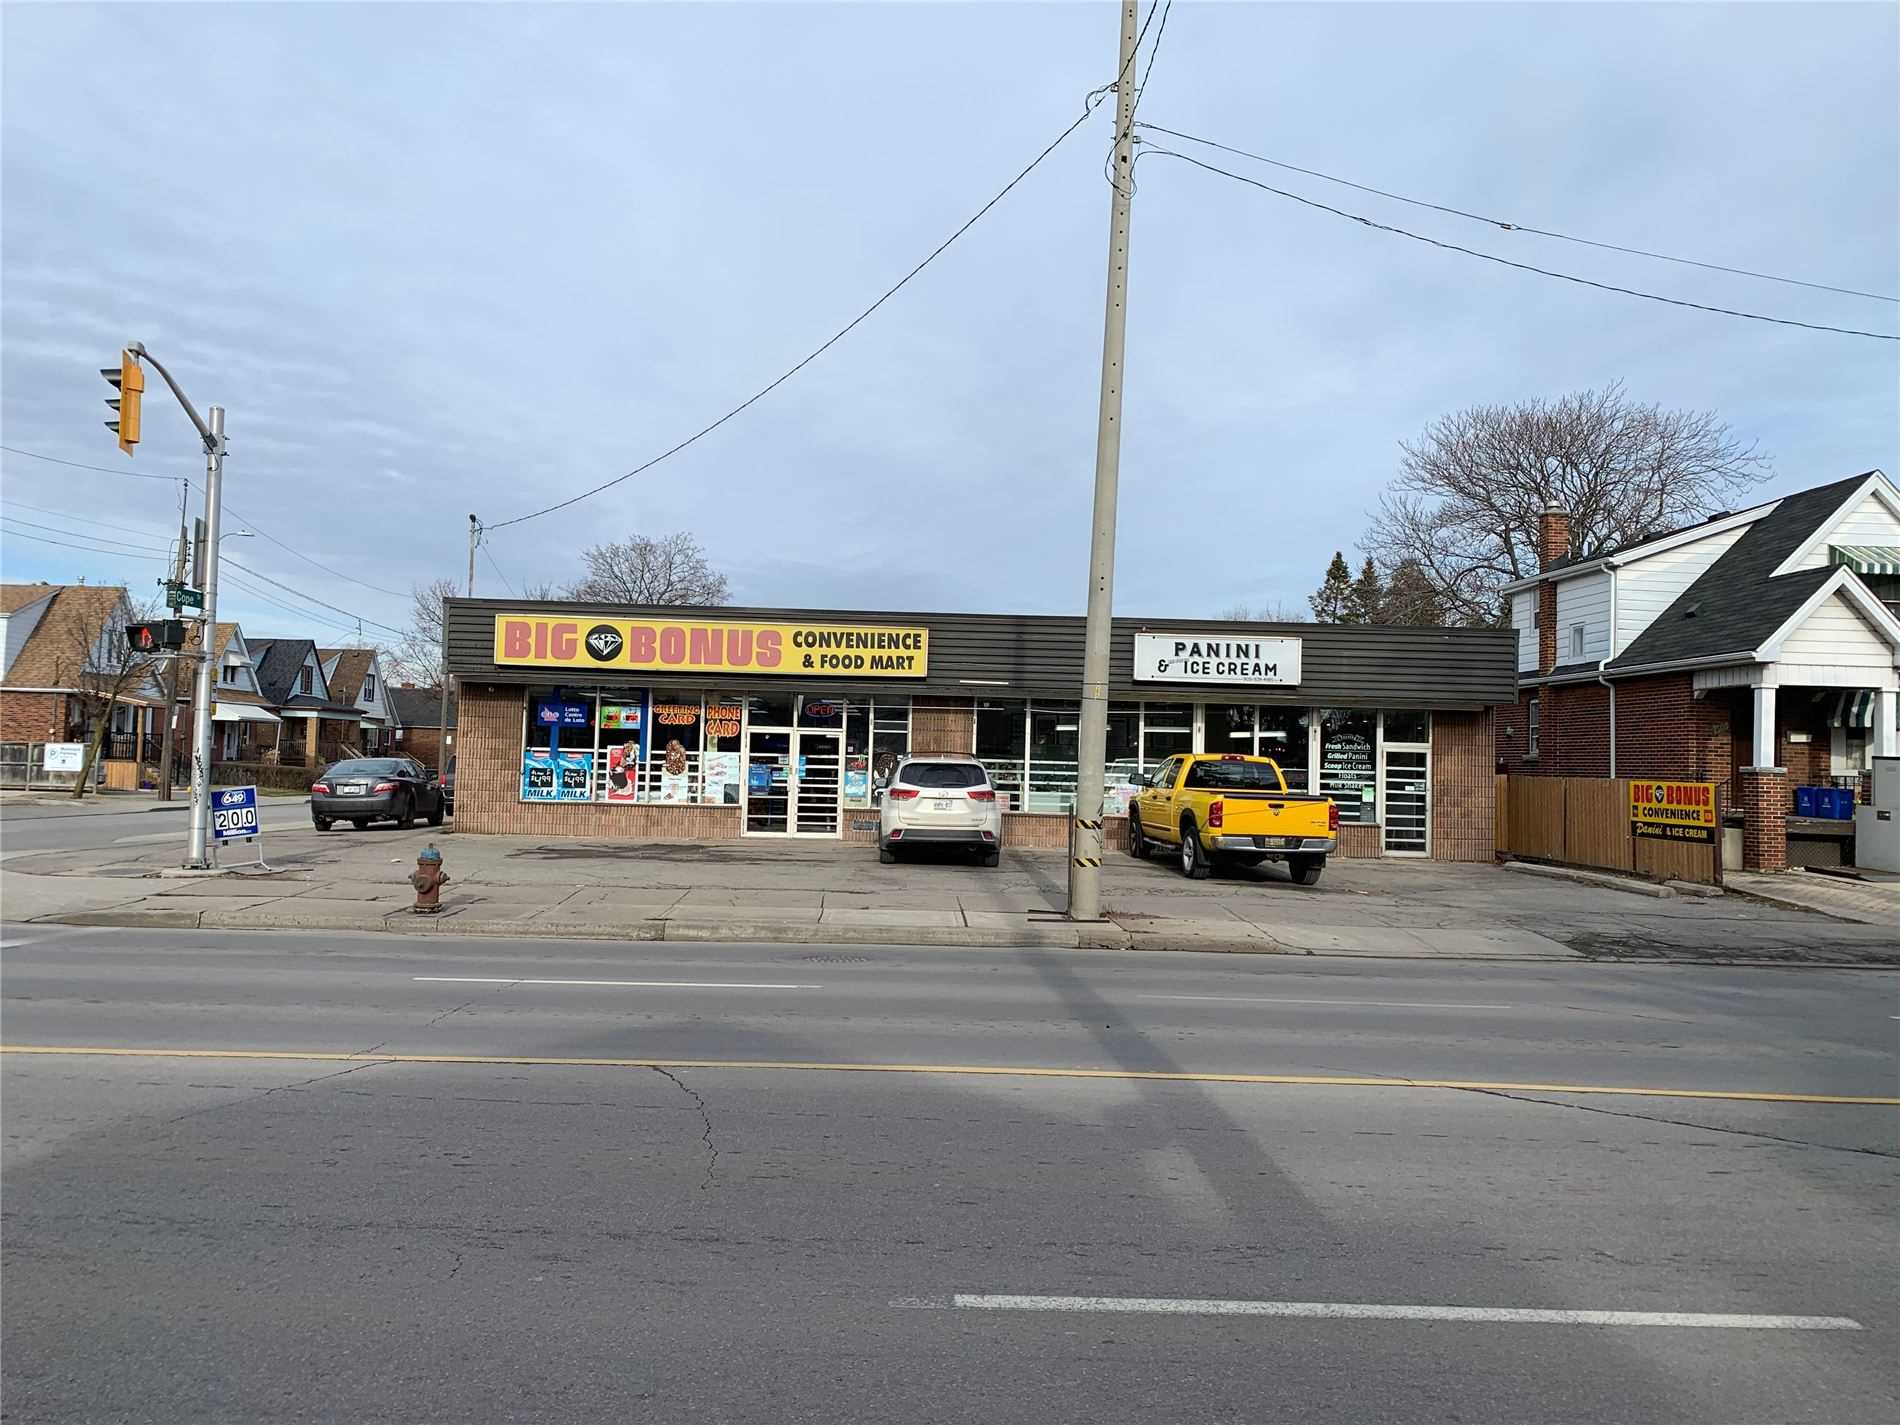 Two Money Making Businesses With Property For Sale. Convenience Store And Ice Cream, Both Carrying Higher Profit Margins. Corner Lot, Free Standing Property Located On High Traffic Street, Ample Parking. Yearly Average Revenue Approx $650,000(Cigarette Only 25%), Lottery/Atm/Other Income $22000/Yr. Utilities $600/Mth, Still Potential Of Business Growth For Right Operator. Limited Business Hours 8.30-10.30. No Franchise Fee Or Royalty.